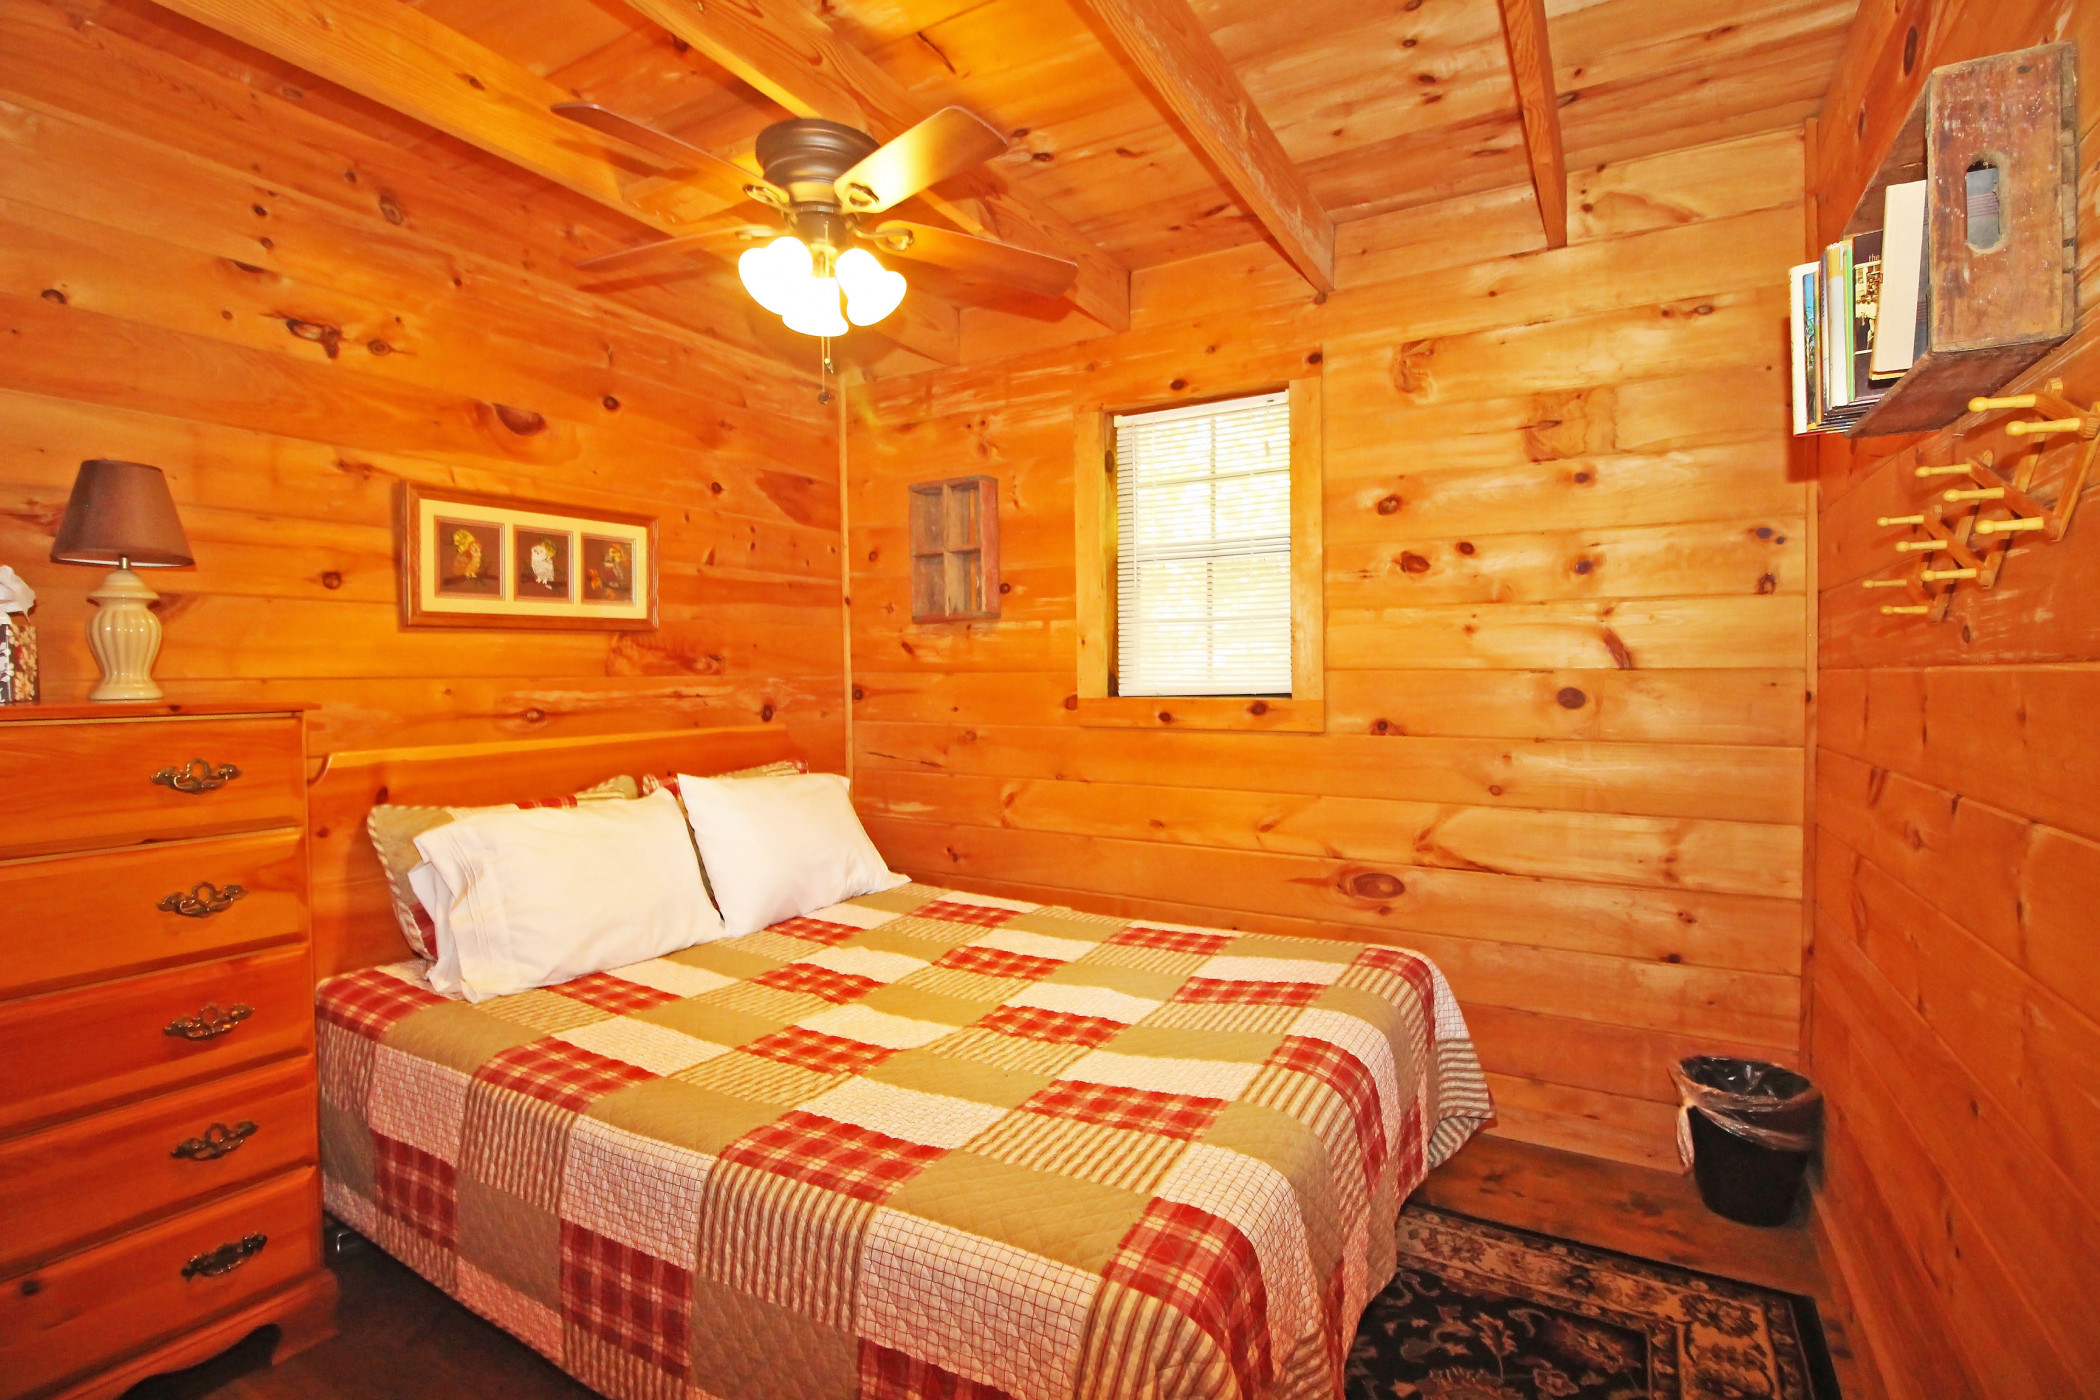 The Cabins at Copperhill - Cabin #4